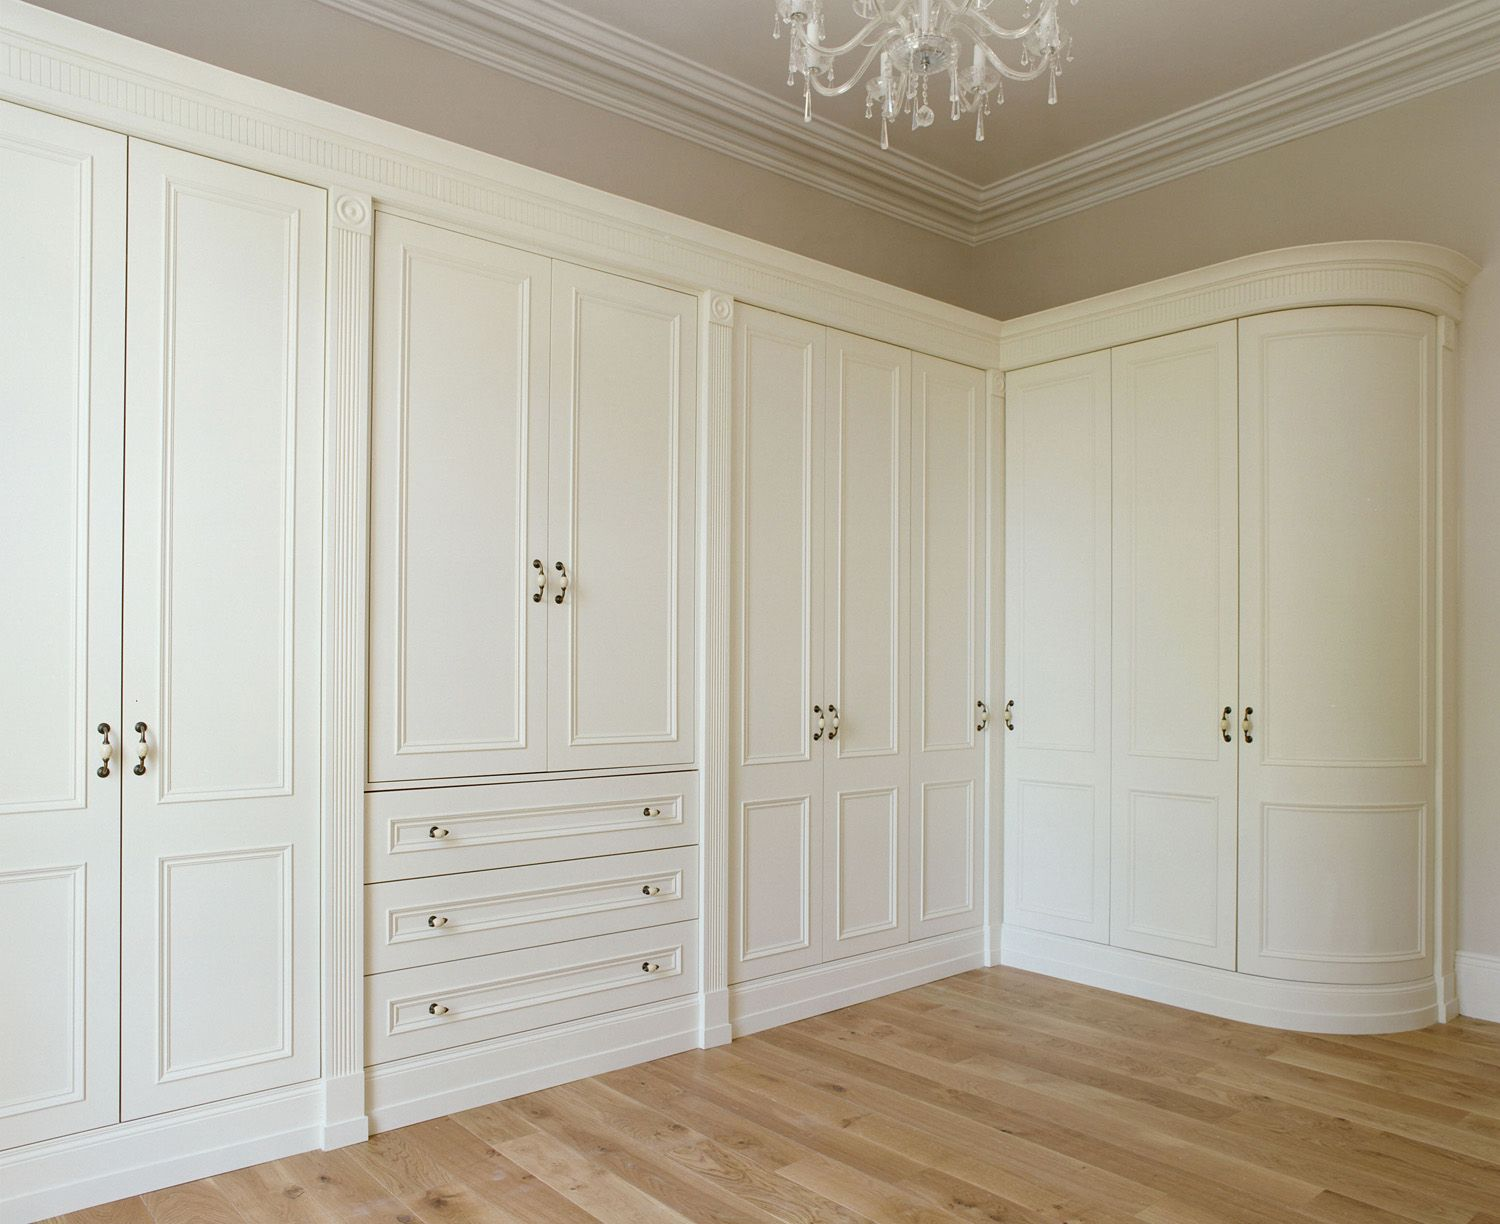 Newcastle design bedroom furniture fitted wardrobes for Bedroom closets designs